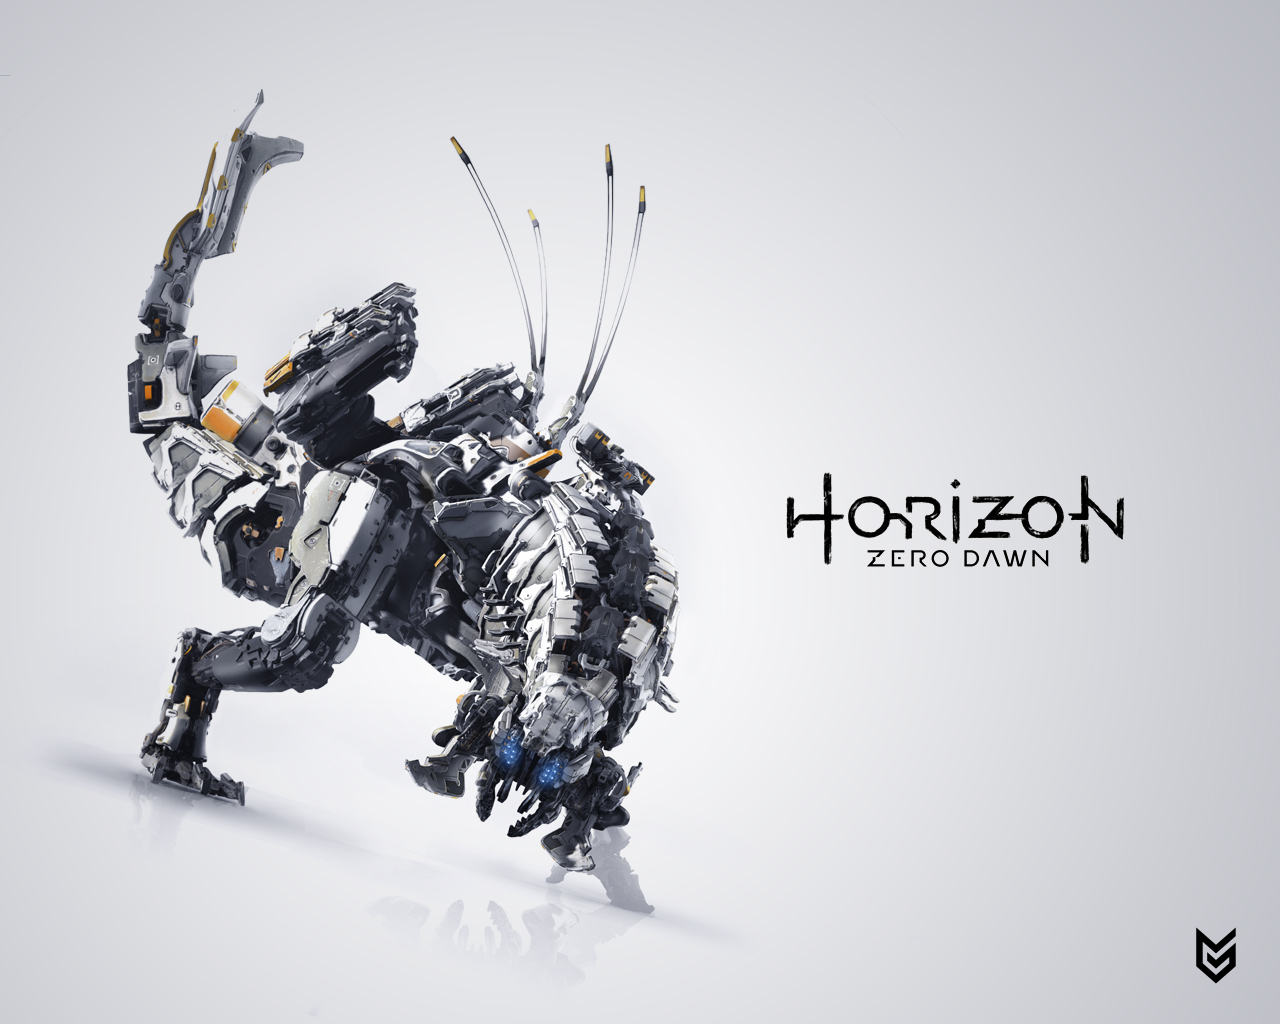 Guerrilla Releases Amazing Horizon  Zero Dawn Wallpapers For Your     Guerrilla Releases Amazing Horizon  Zero Dawn Wallpapers For Your Devices